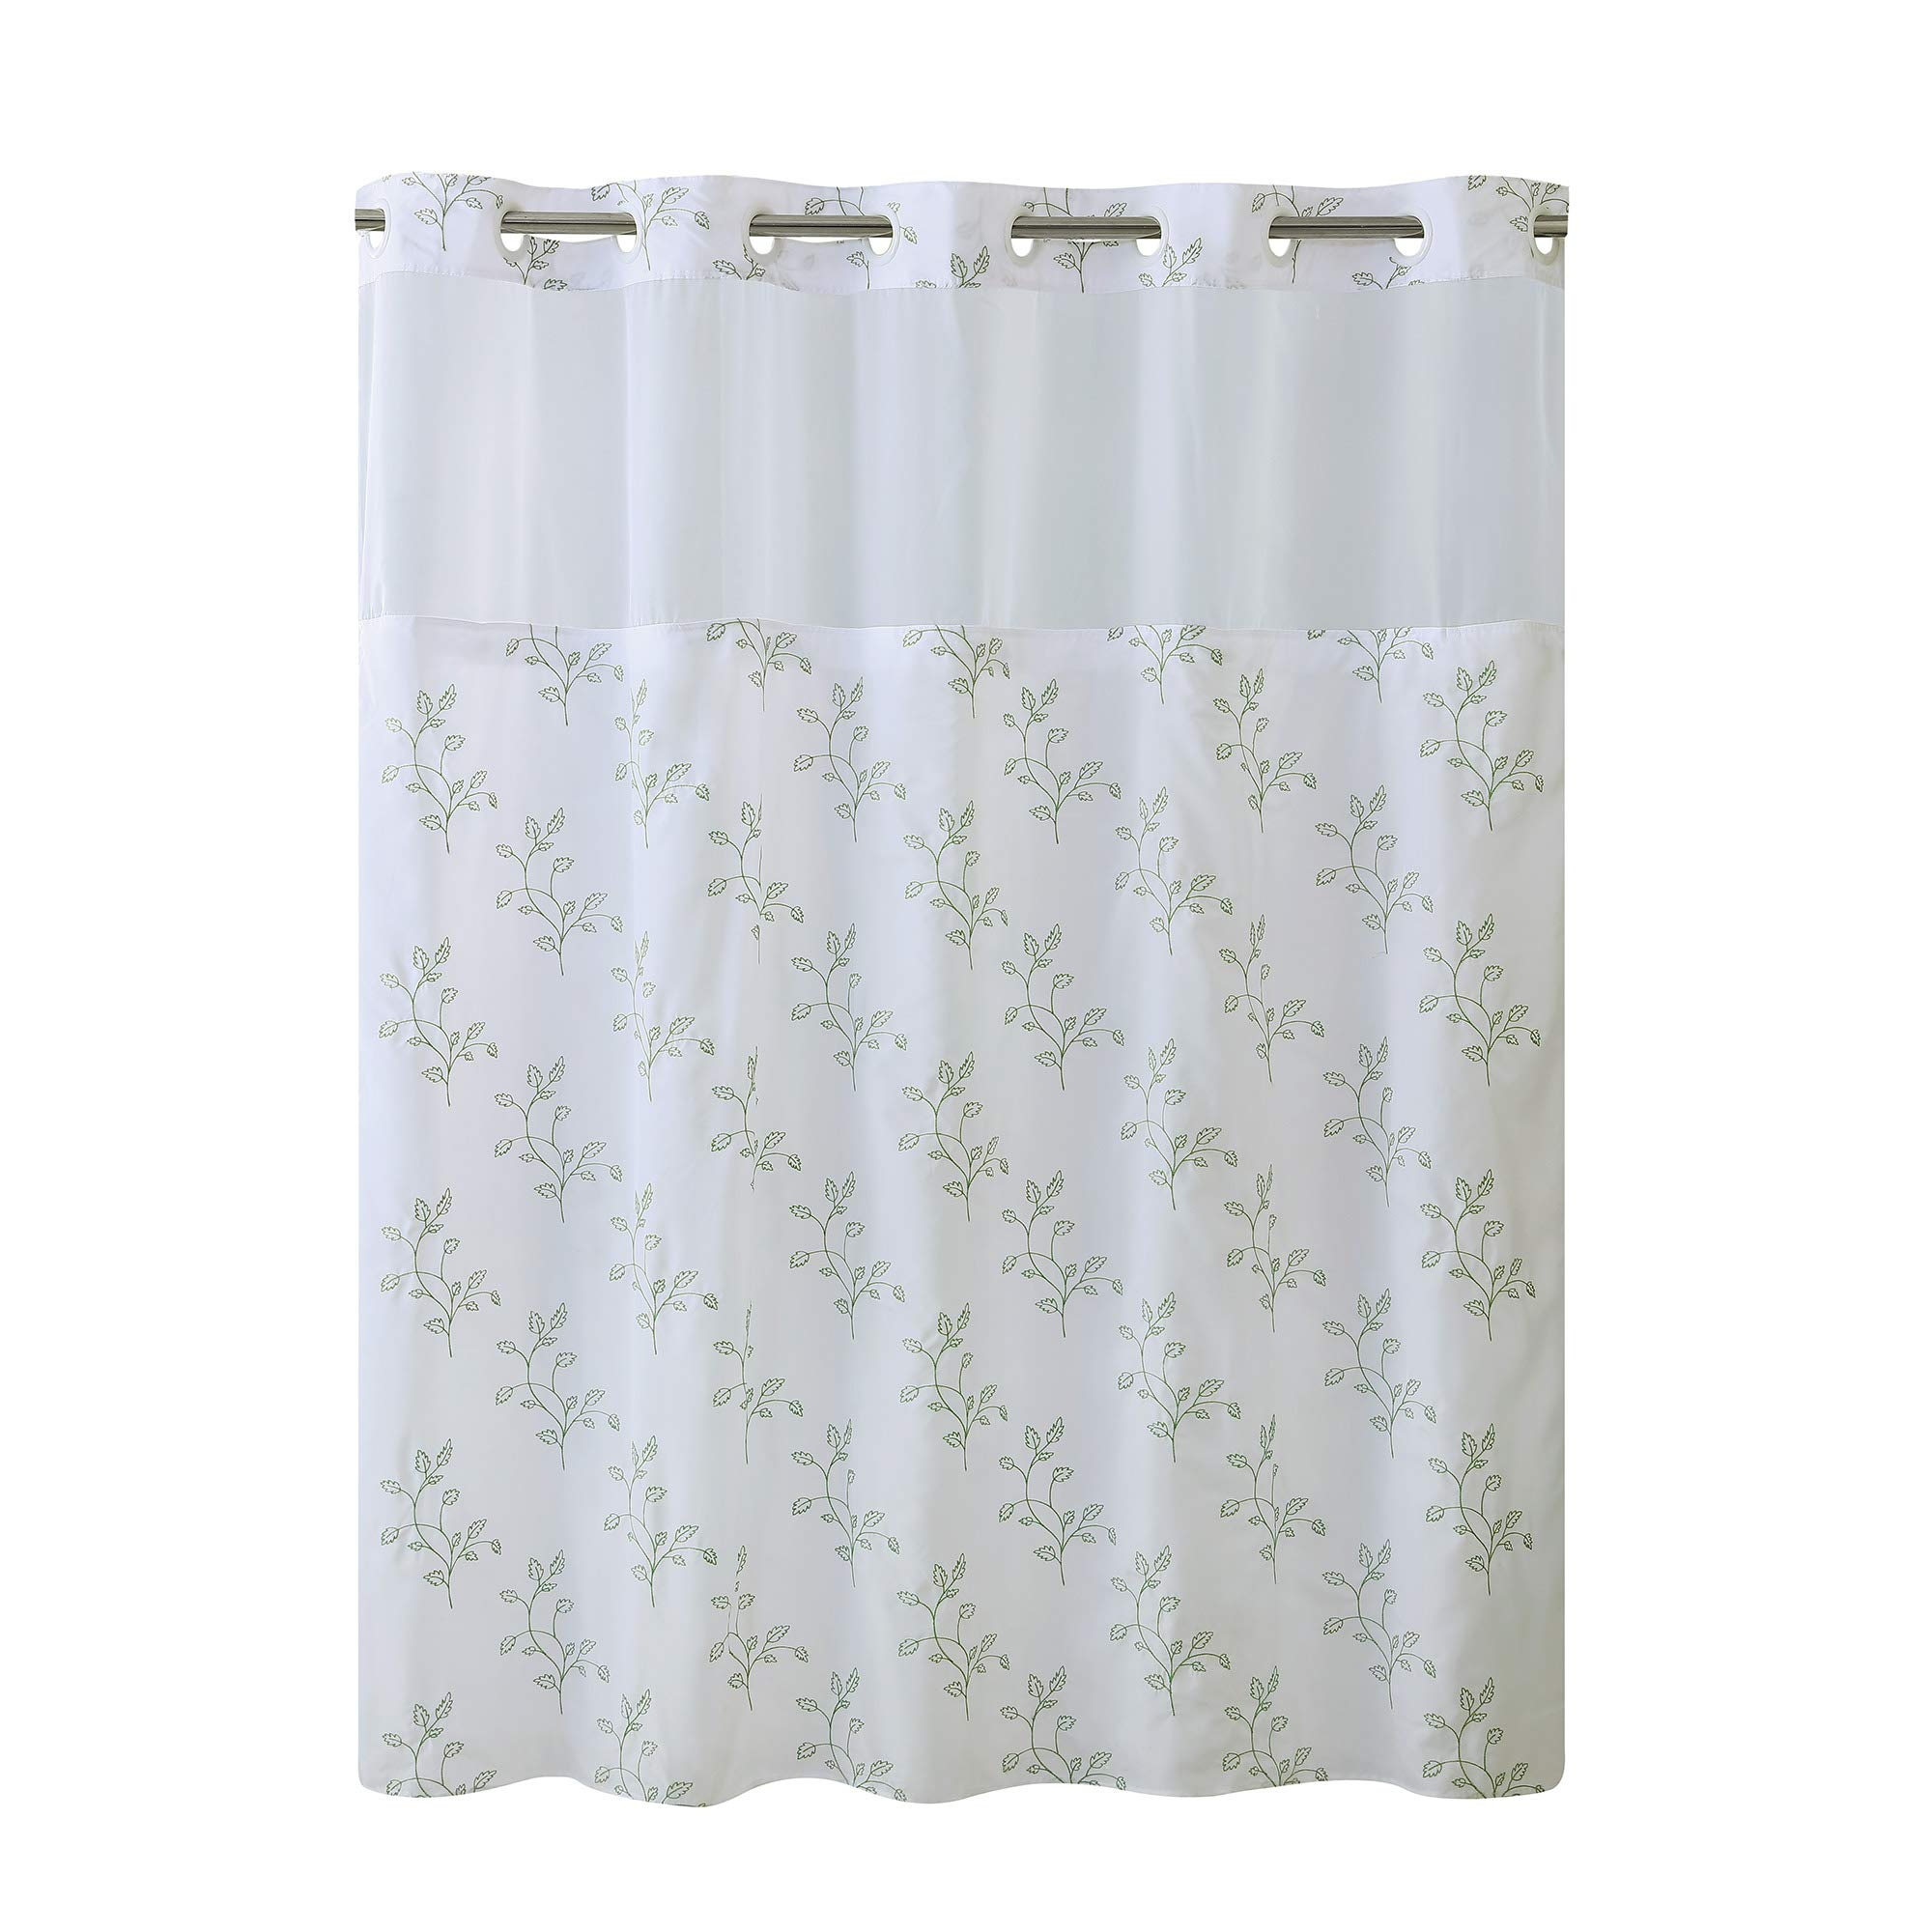 Hookless RBH40MY028 Spring Leaves Shower Curtain with Peva Liner -  Bright White